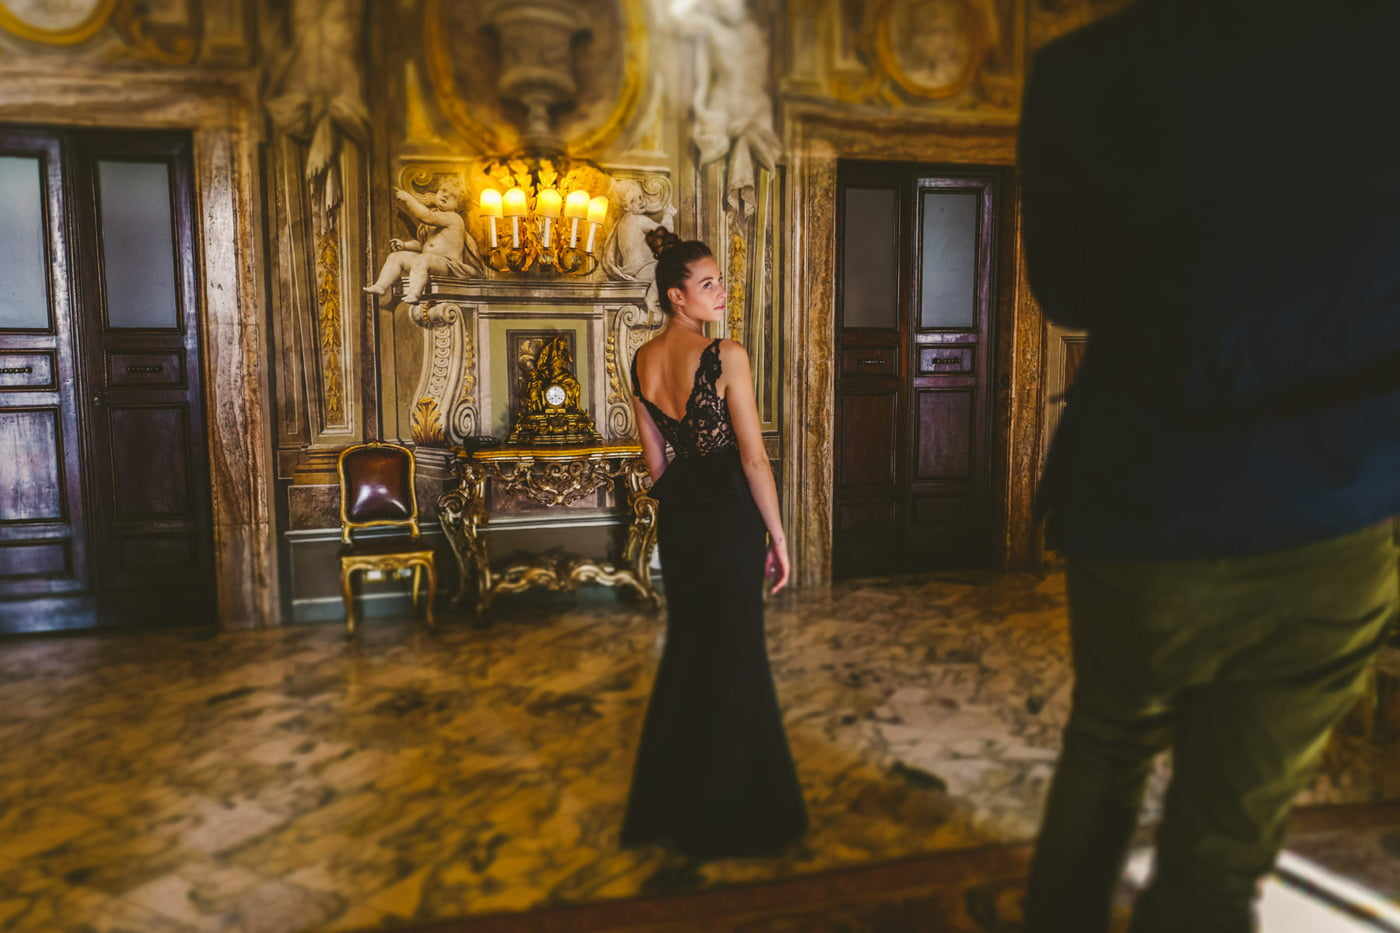 Hotel Continental Wedding, Epic Workshop With Sam Hurd in Siena, Federico Pannacci, Federico Pannacci